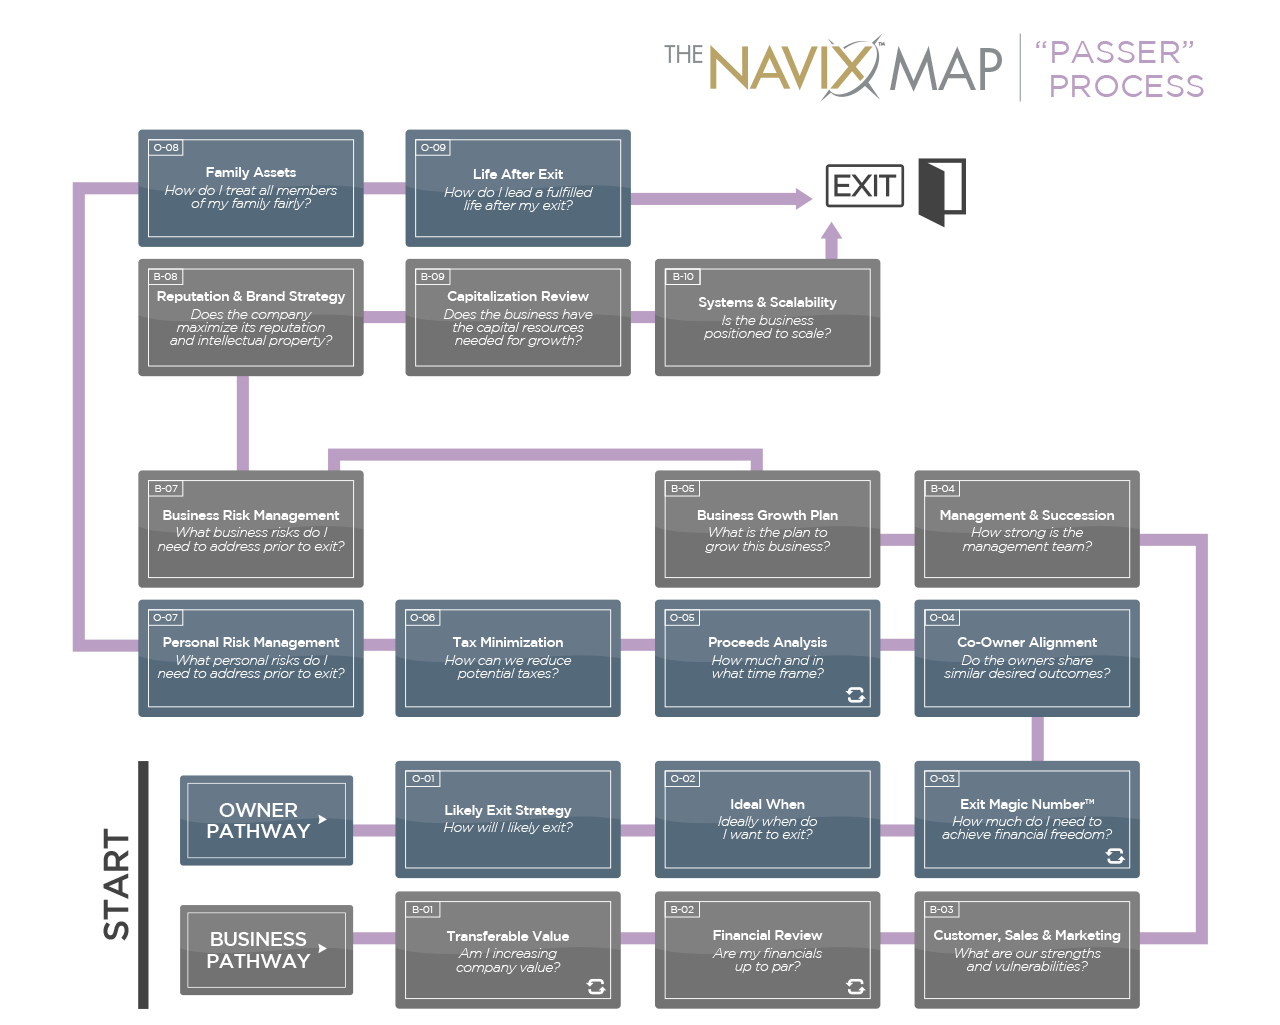 The NAVIX Map | The Passer Process